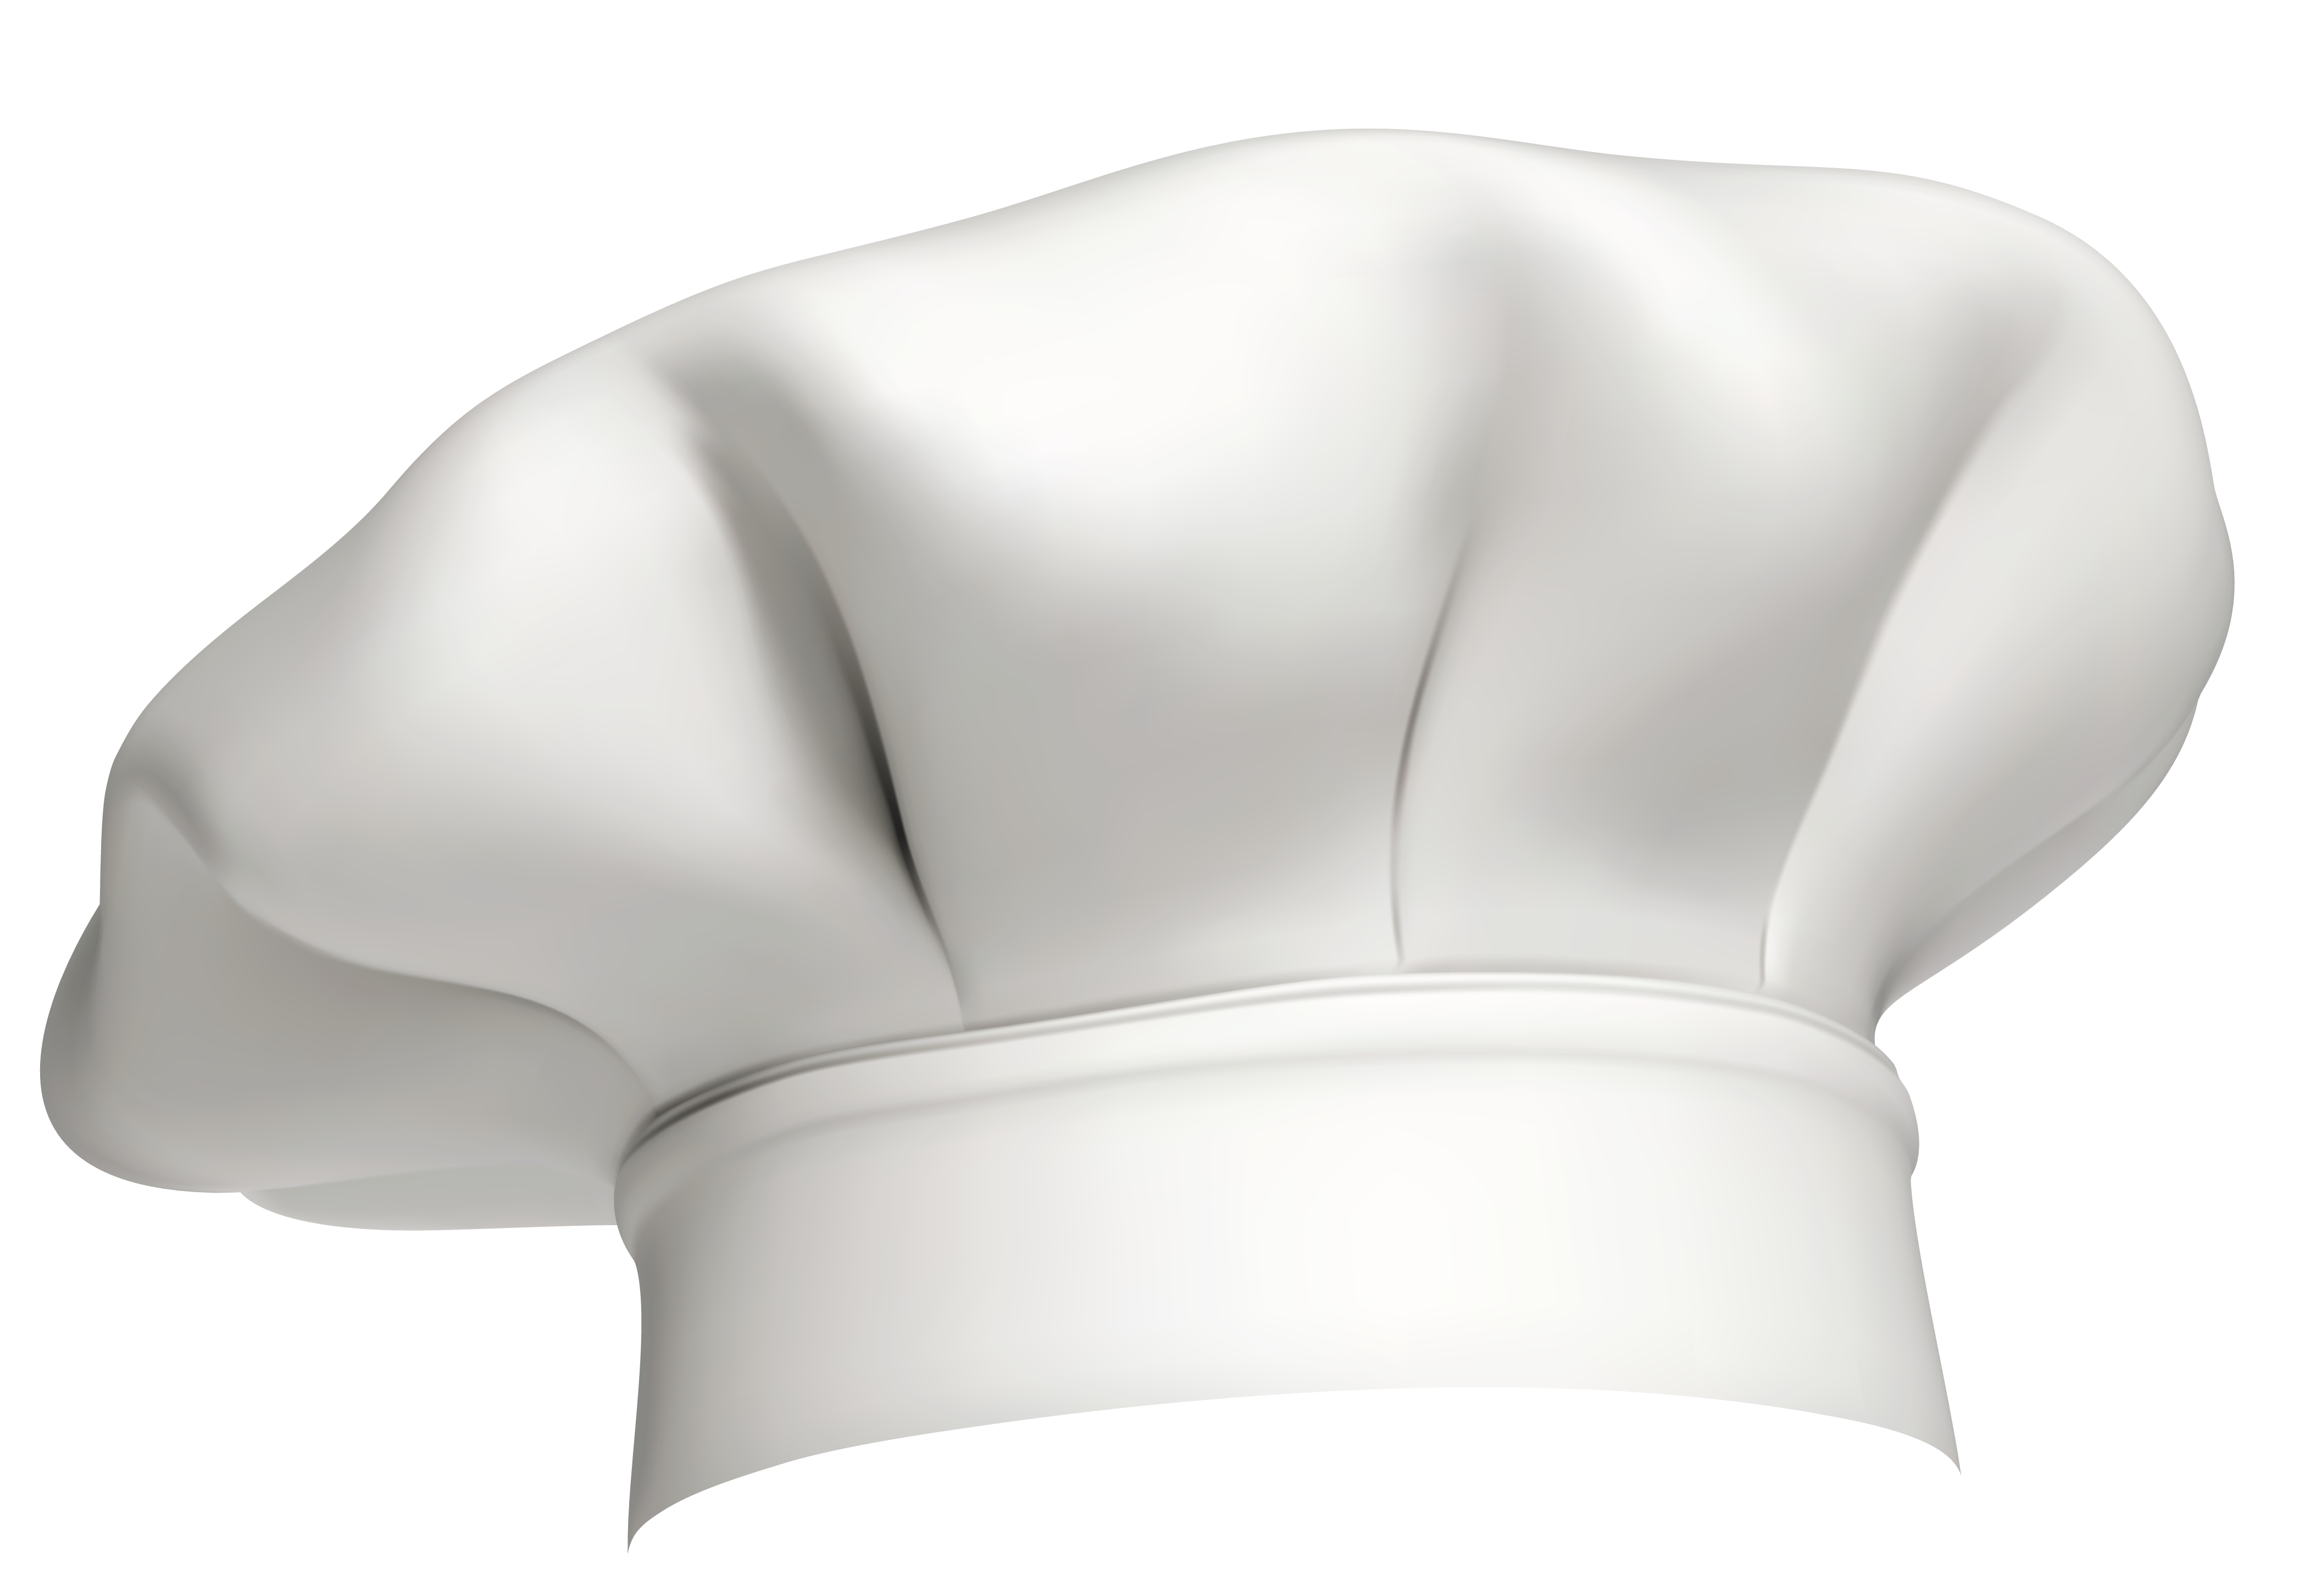 Chef hat clipart png clip art royalty free stock White Chef Hat PNG Clipart clip art royalty free stock